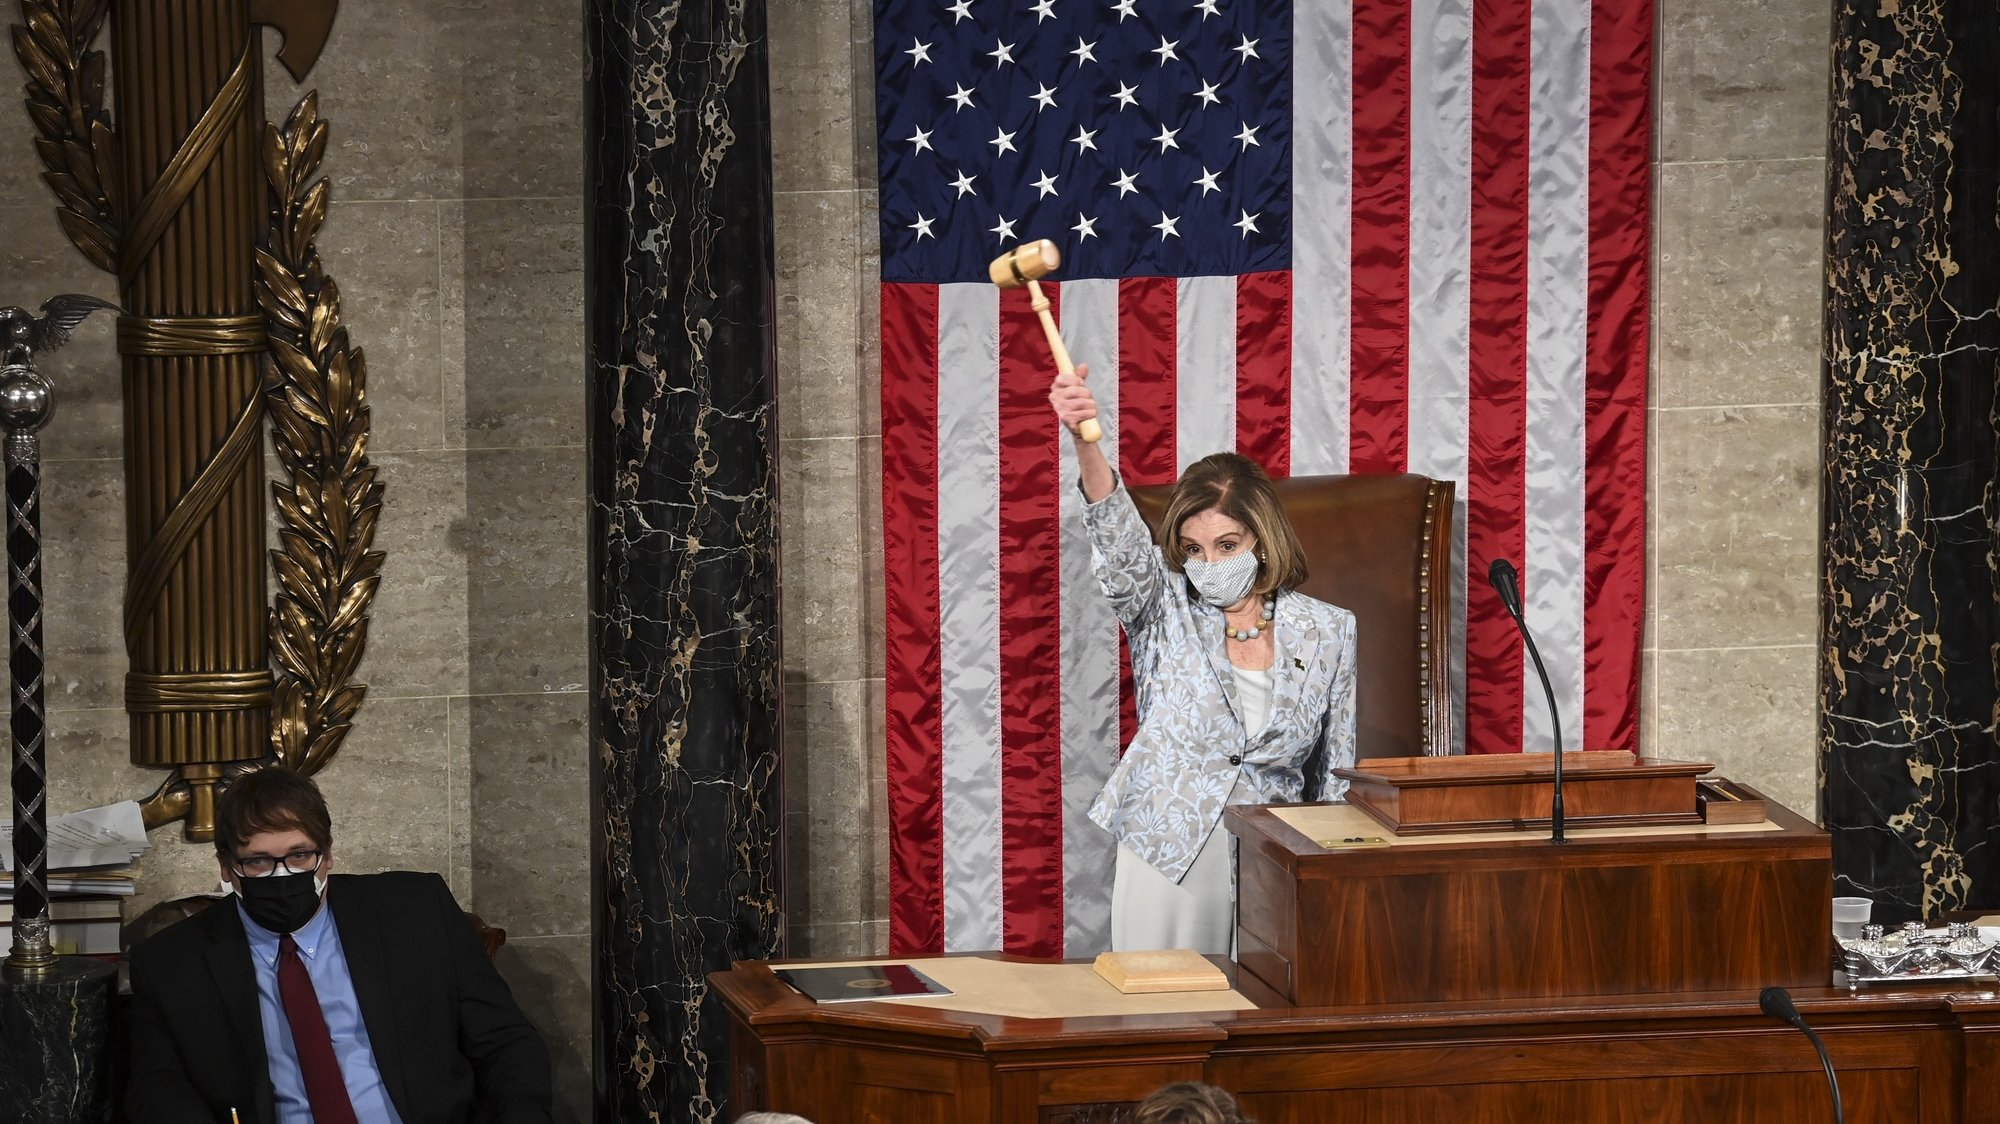 epa08917852 House Speaker Nancy Pelosi (D-Calif.) waves the gavel on the opening day of the 117th Congress at the US Capitol in Washington, DC, USA, 03 January 2021  EPA/Bill O'Leary / POOL